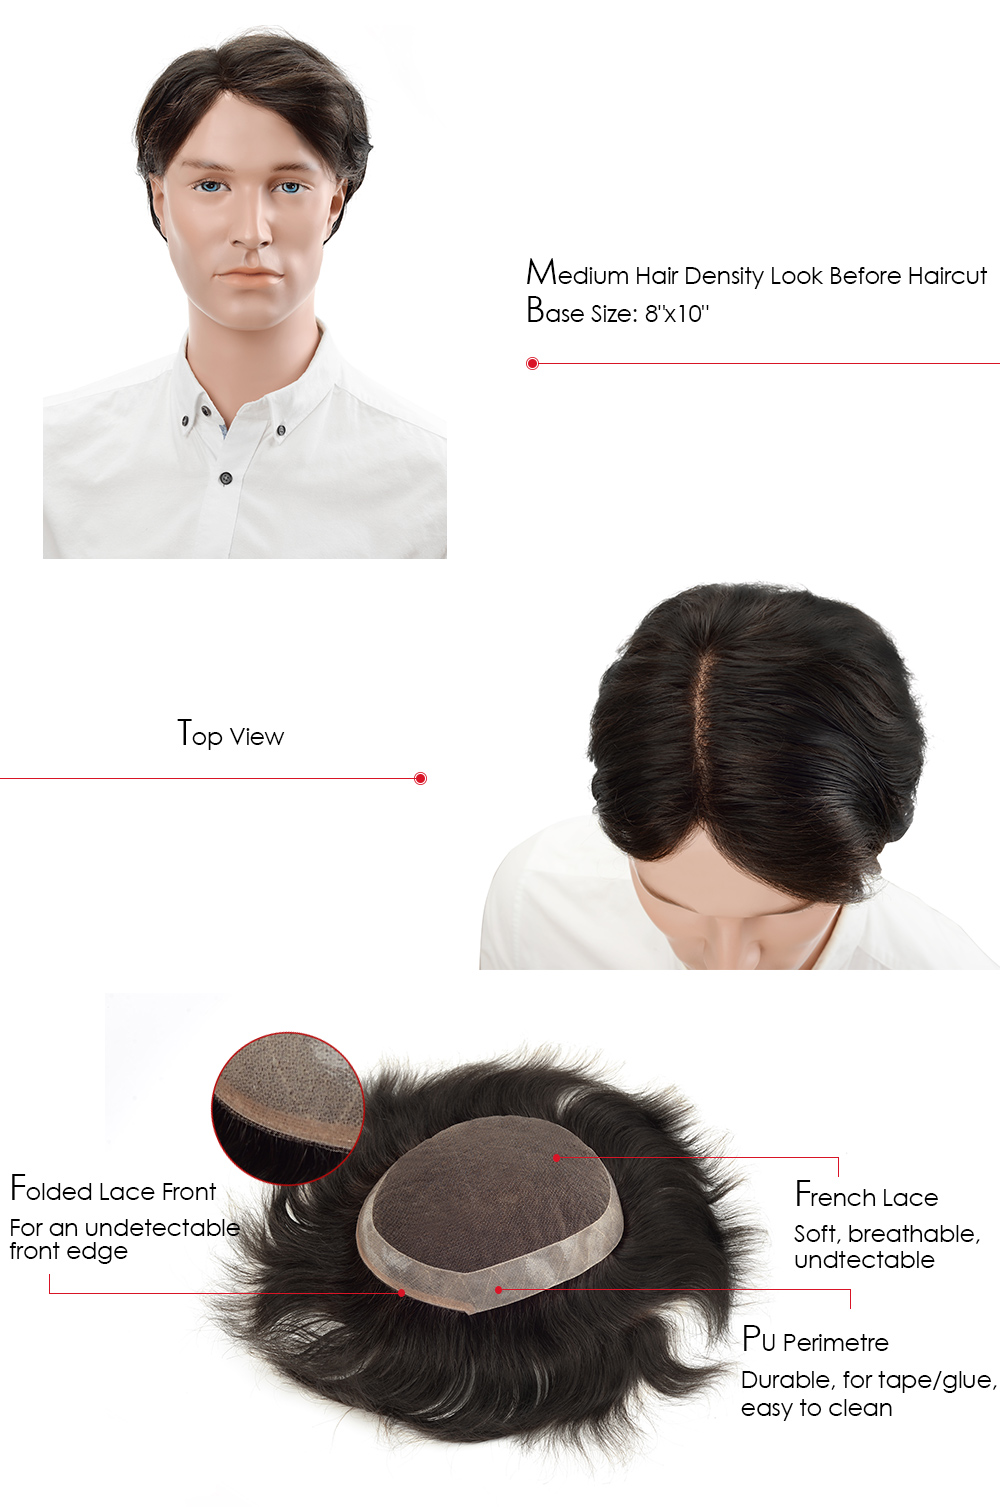 PU perimeter hair piece for men